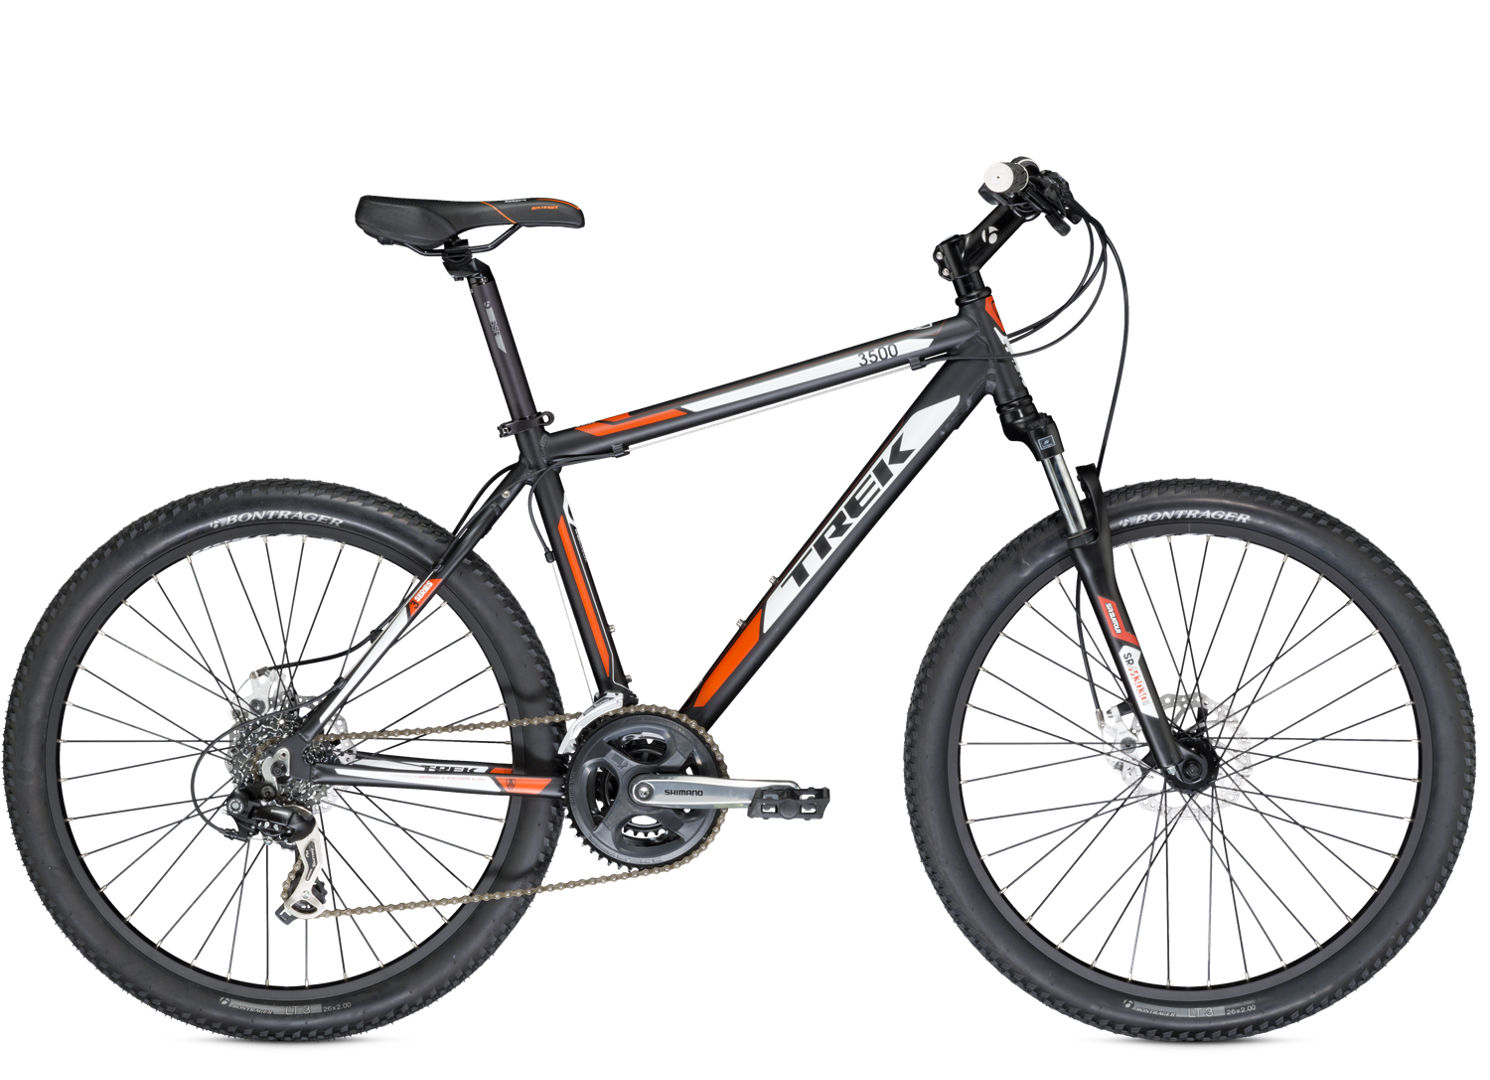 [Review] 2014 Trek 8.4 DS Does Anything You Want It To